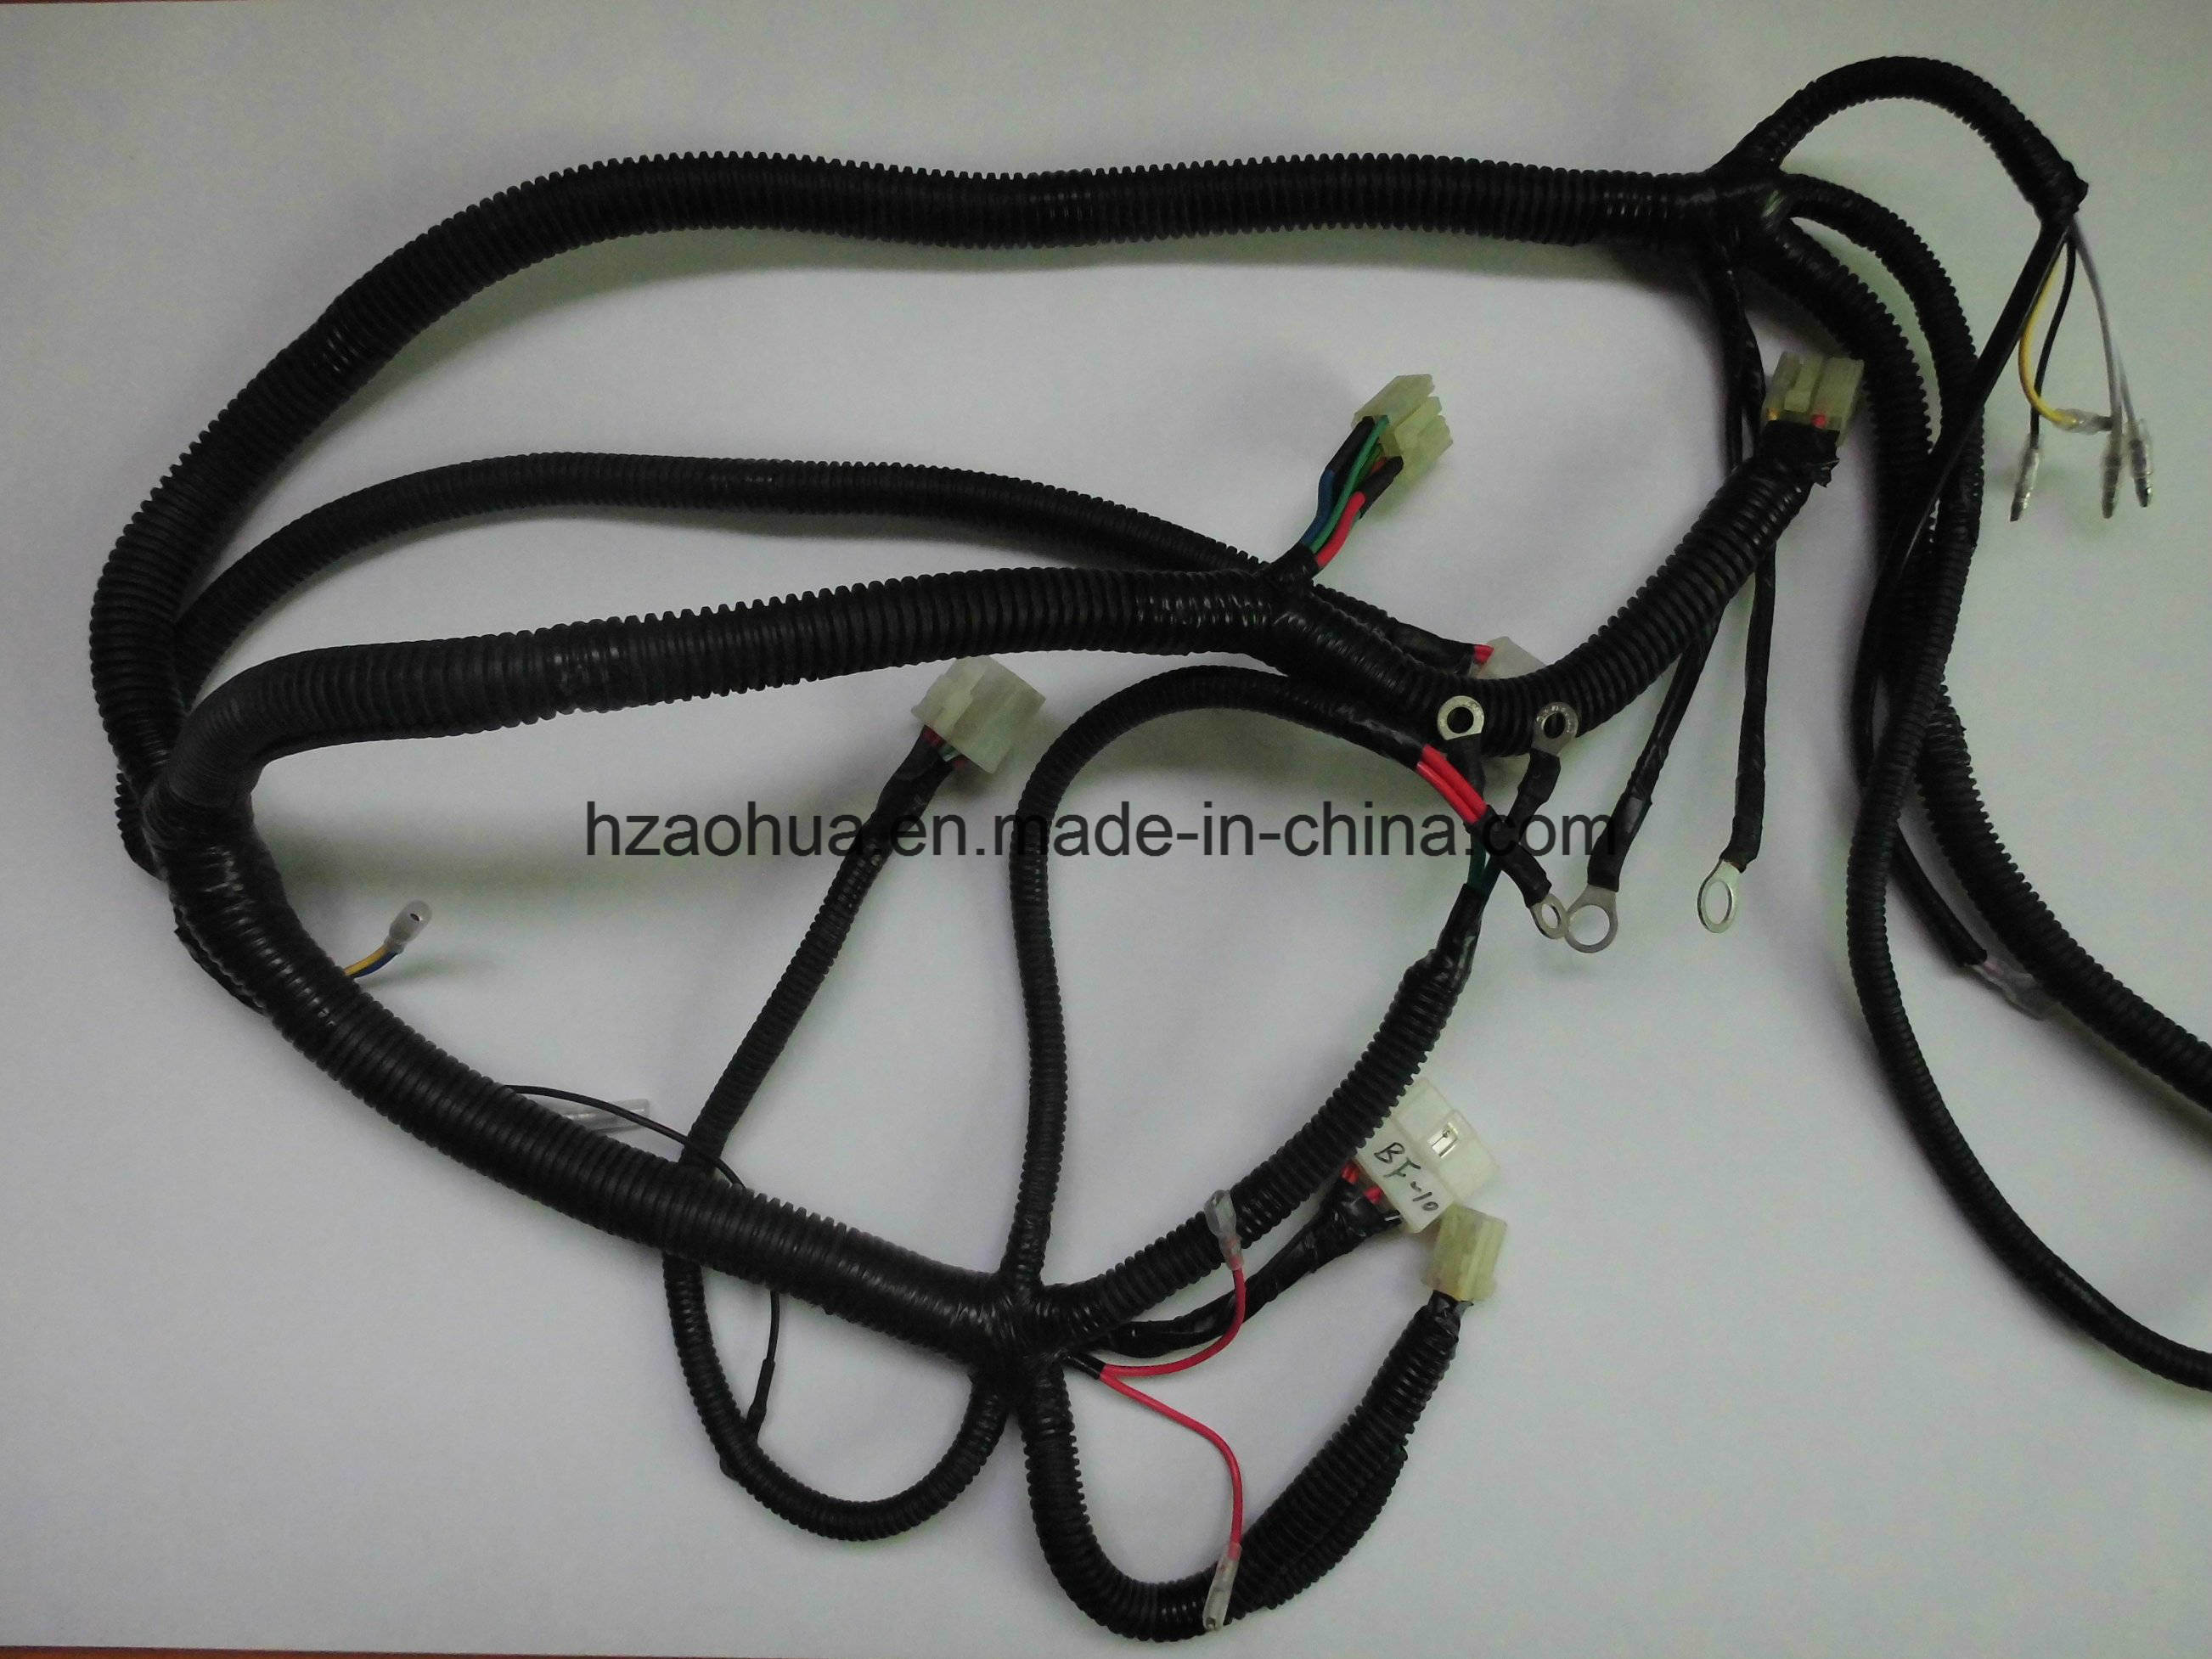 Prime China Atv Wire Harness Quad Wire Harness China Cable Assembly Wiring Digital Resources Otenewoestevosnl